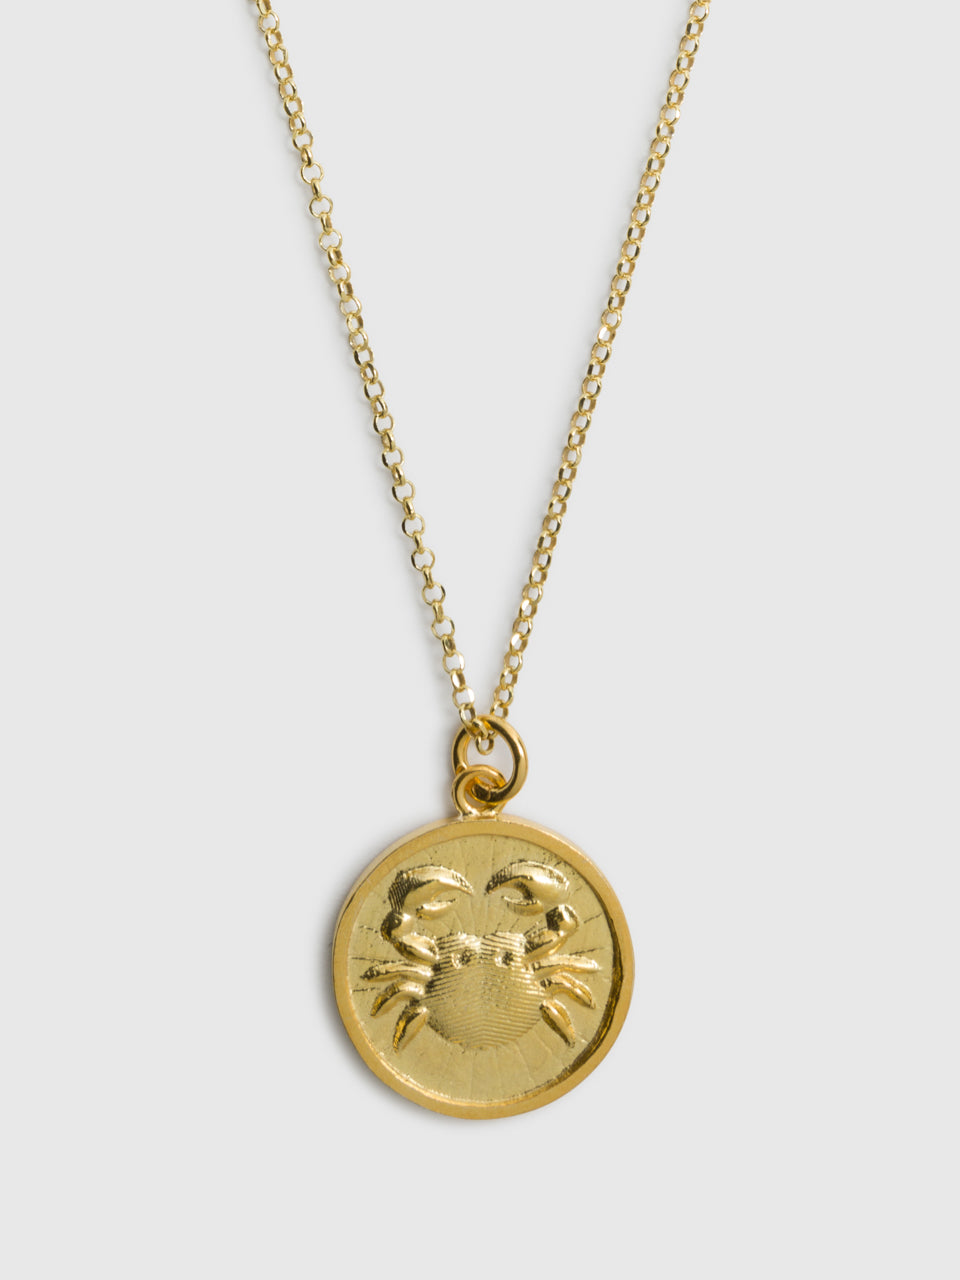 Portugal Jewels Gold Pendant Necklace